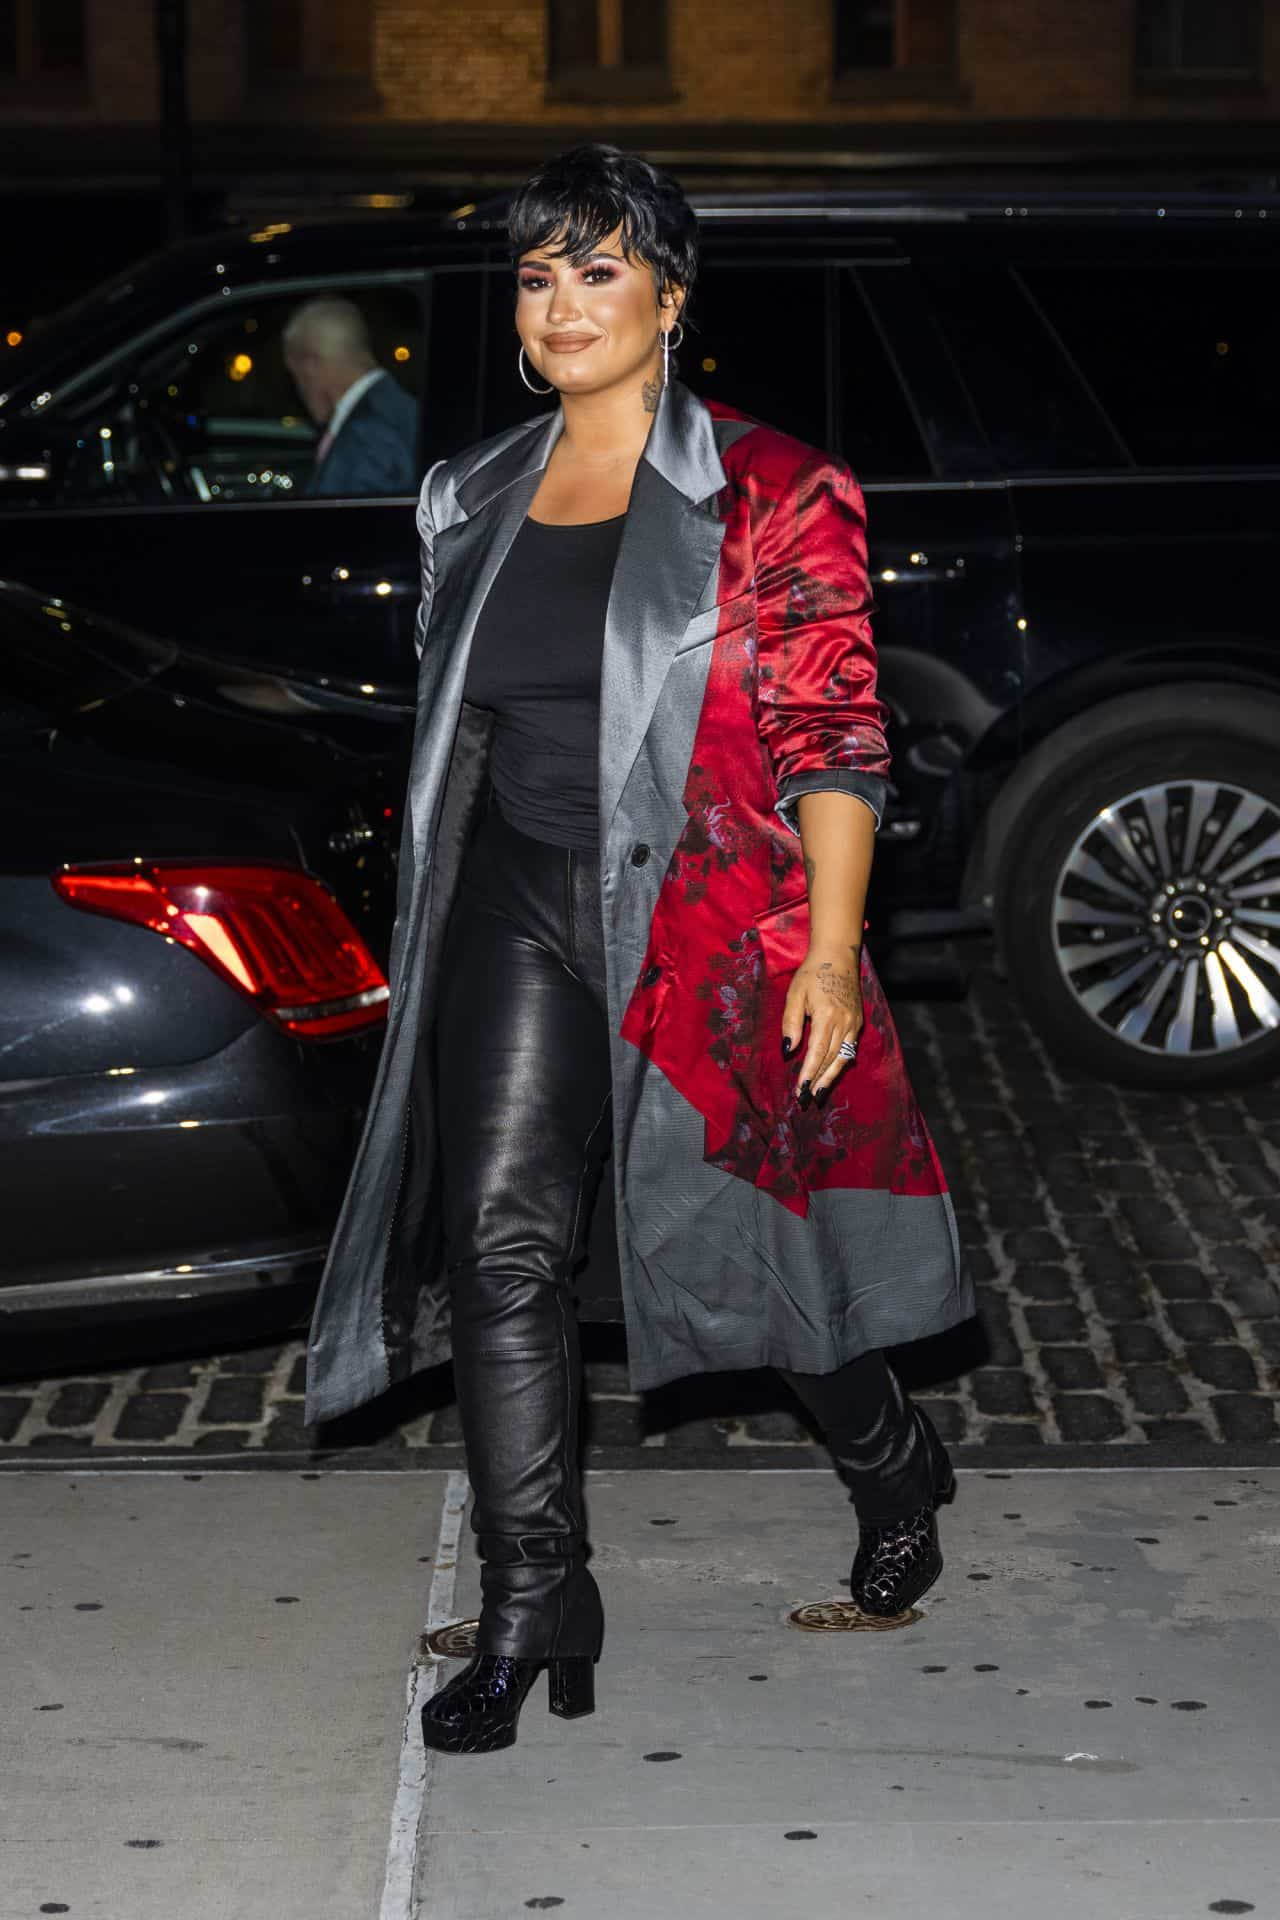 Demi Lovato is Joining her Friends on a Dinner Date in New York City